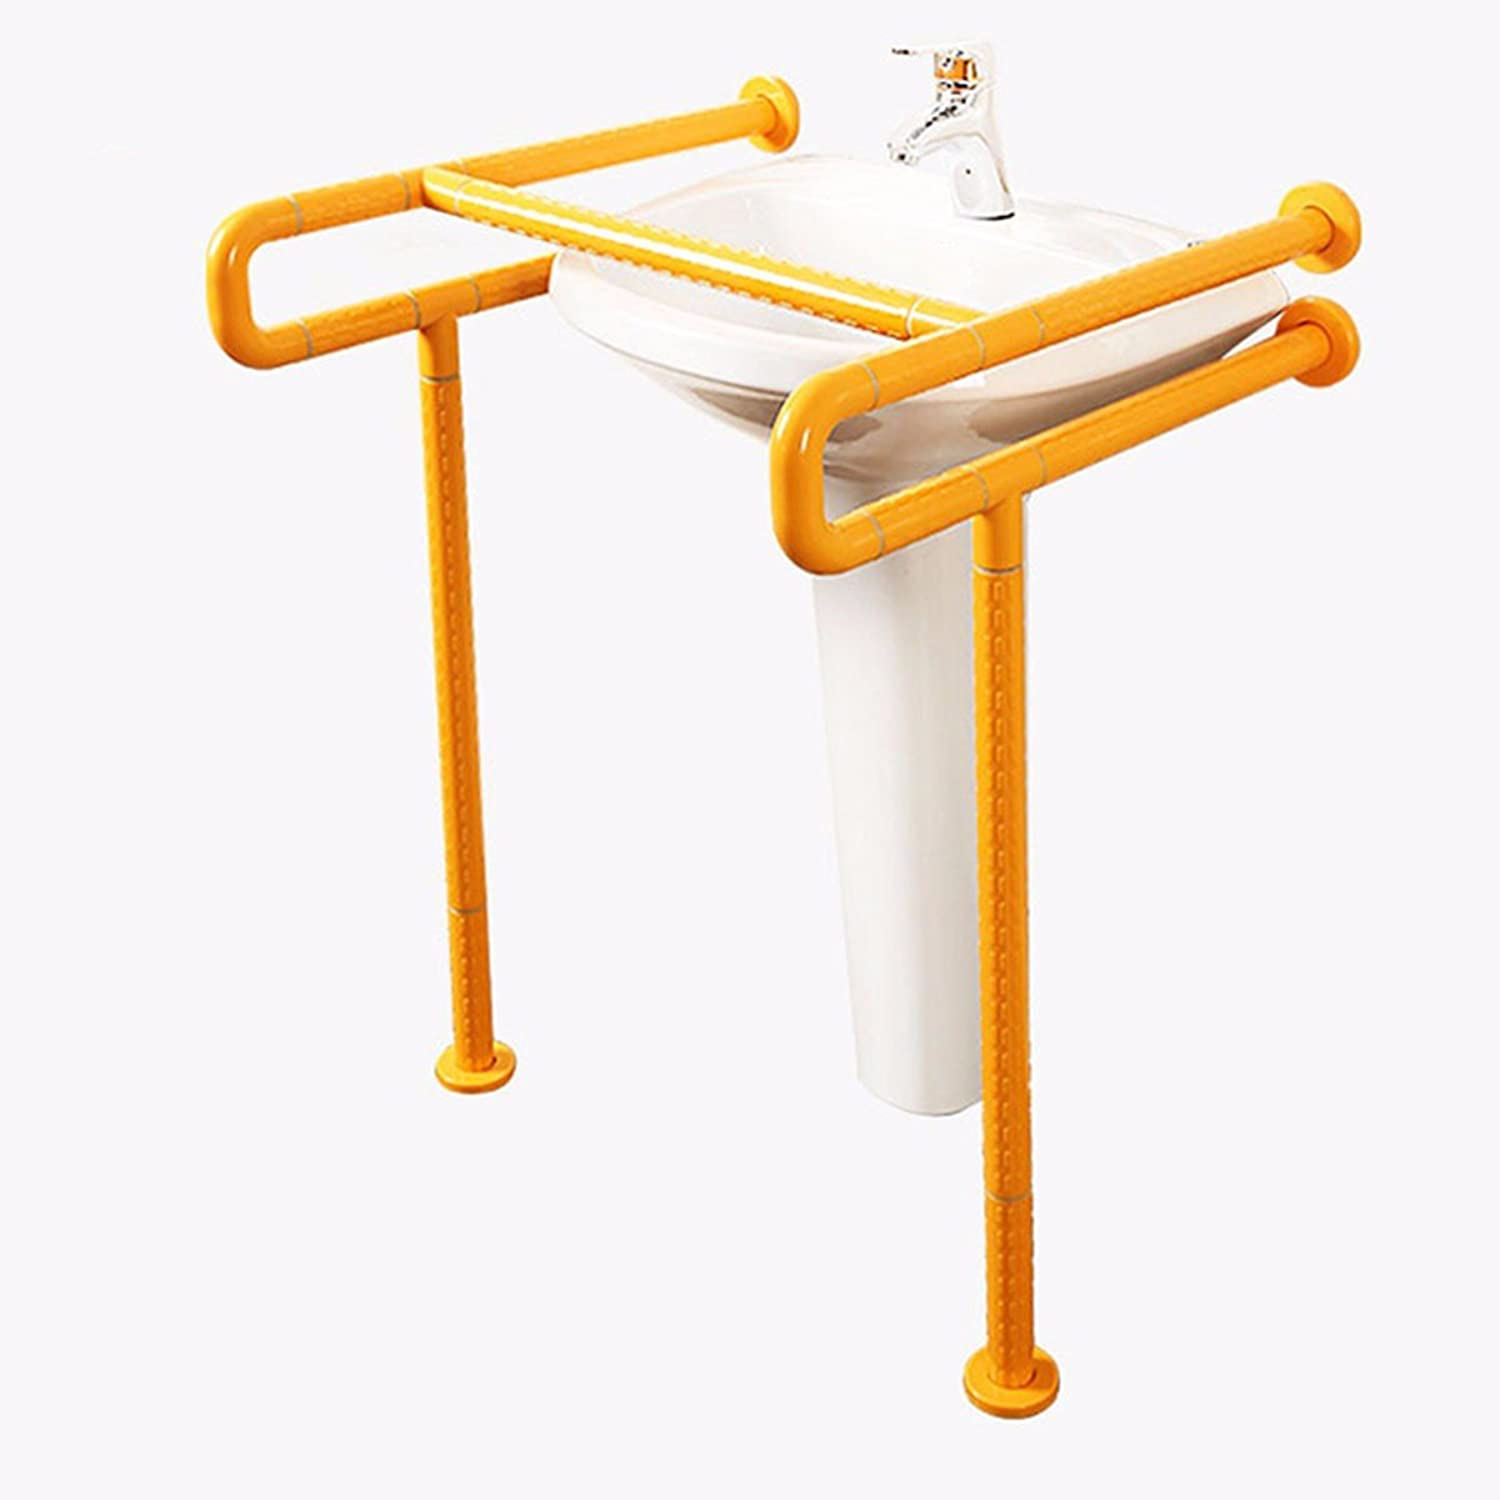 CJSHVR-Nylon Washbasin, Bathroom, Pots, Bathrooms, Safety Handrails,Yellow,B